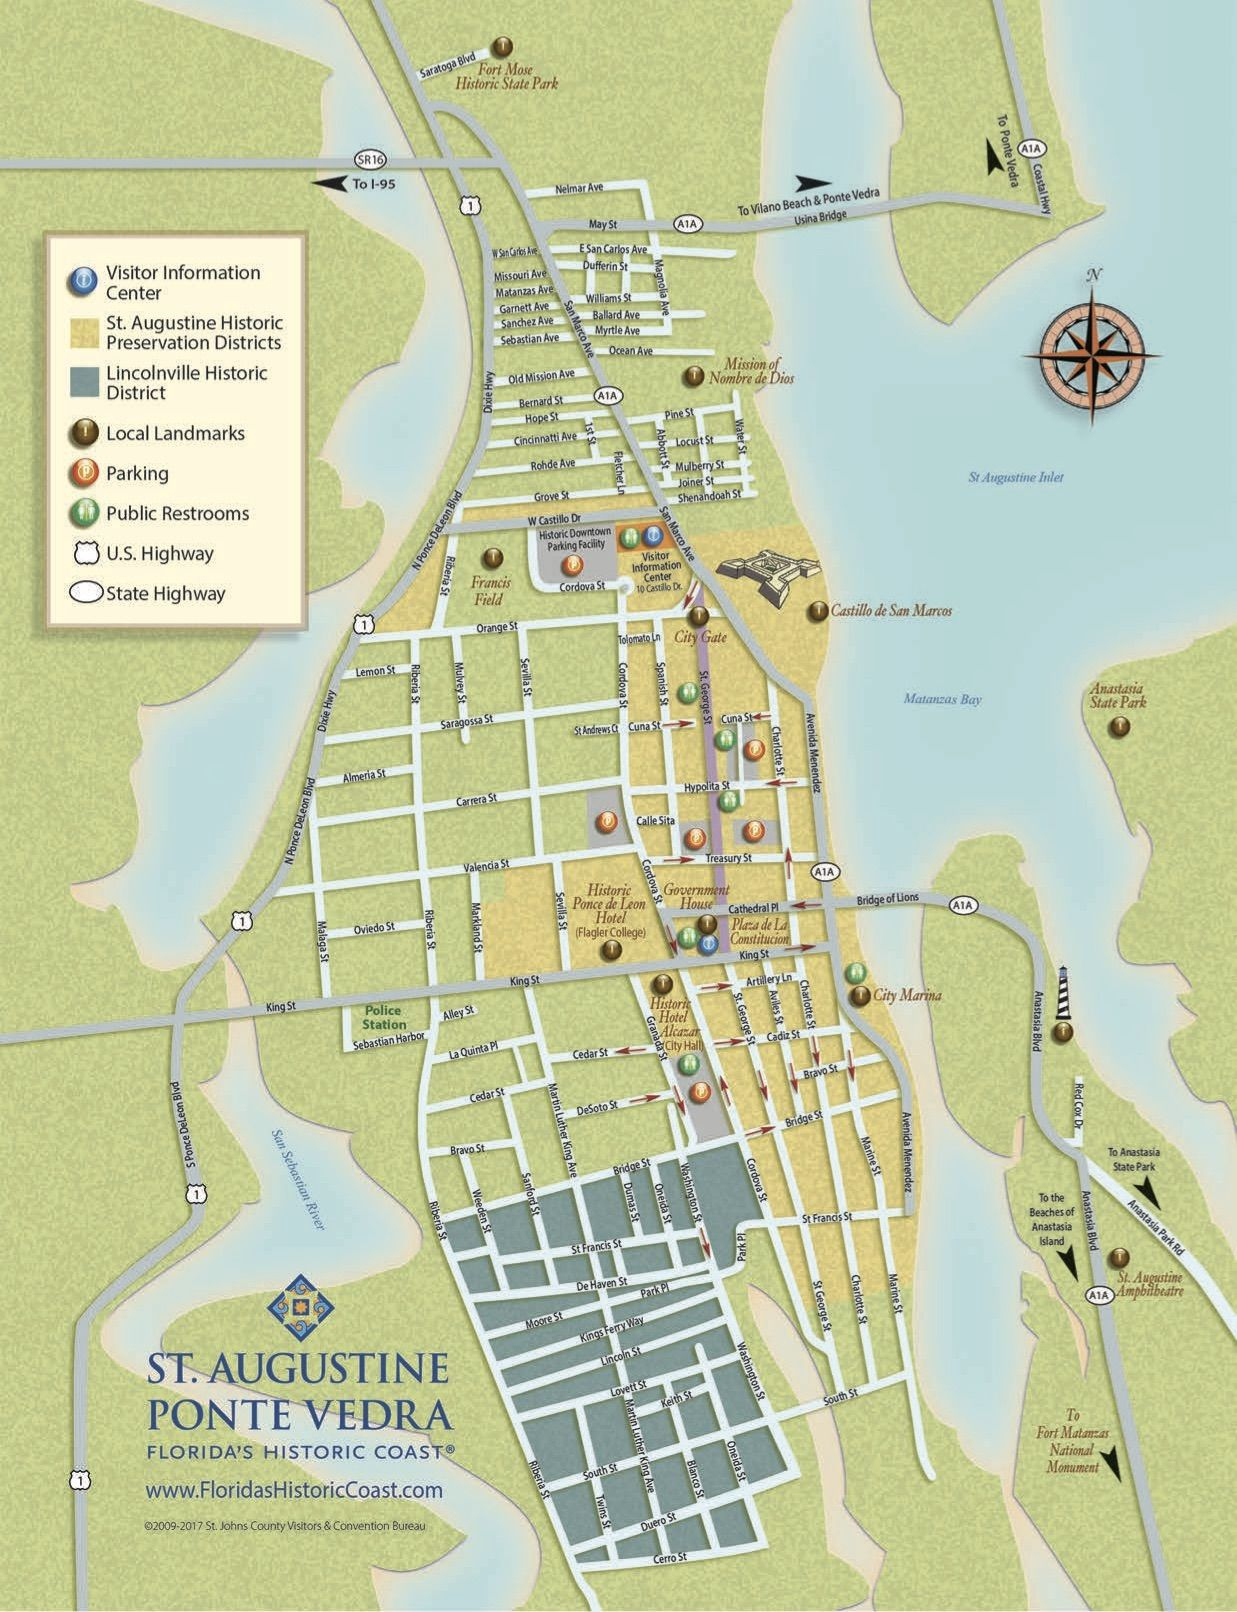 Get To Know Downtown St. Augustine With Our Printable Maps! | Road - Map Of Hotels In St Augustine Florida